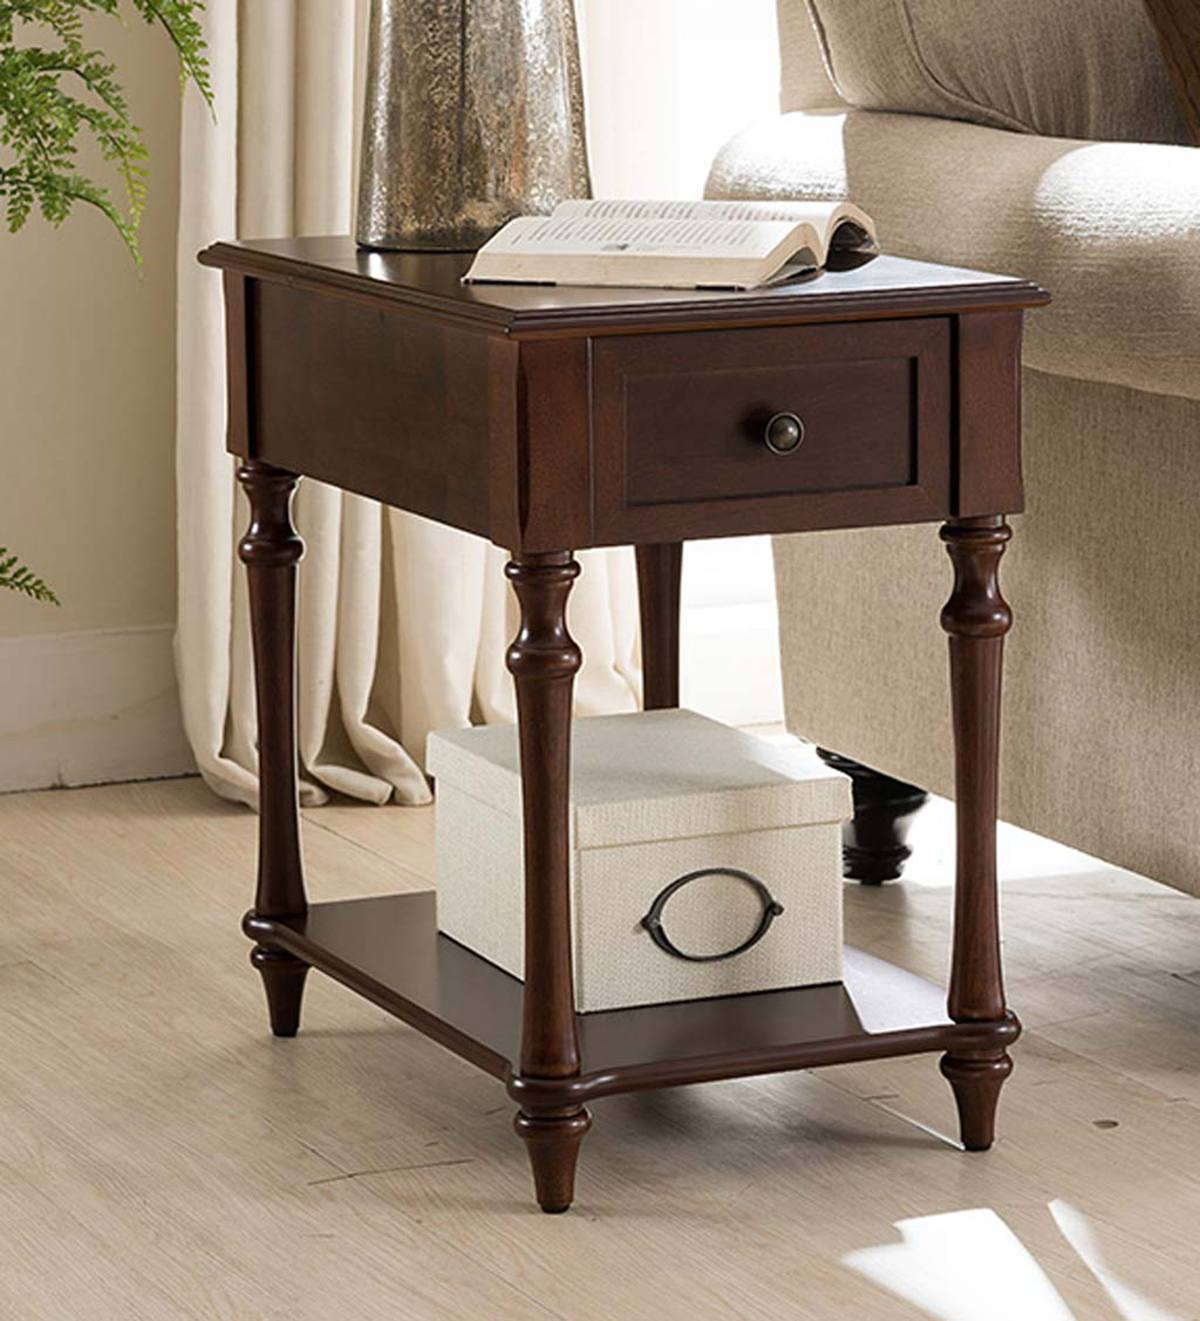 camden side table with charging station dark cherry accent tables mirrored bedroom end small stained glass lamp modern mats outdoor storage bin vanity home goods champagne